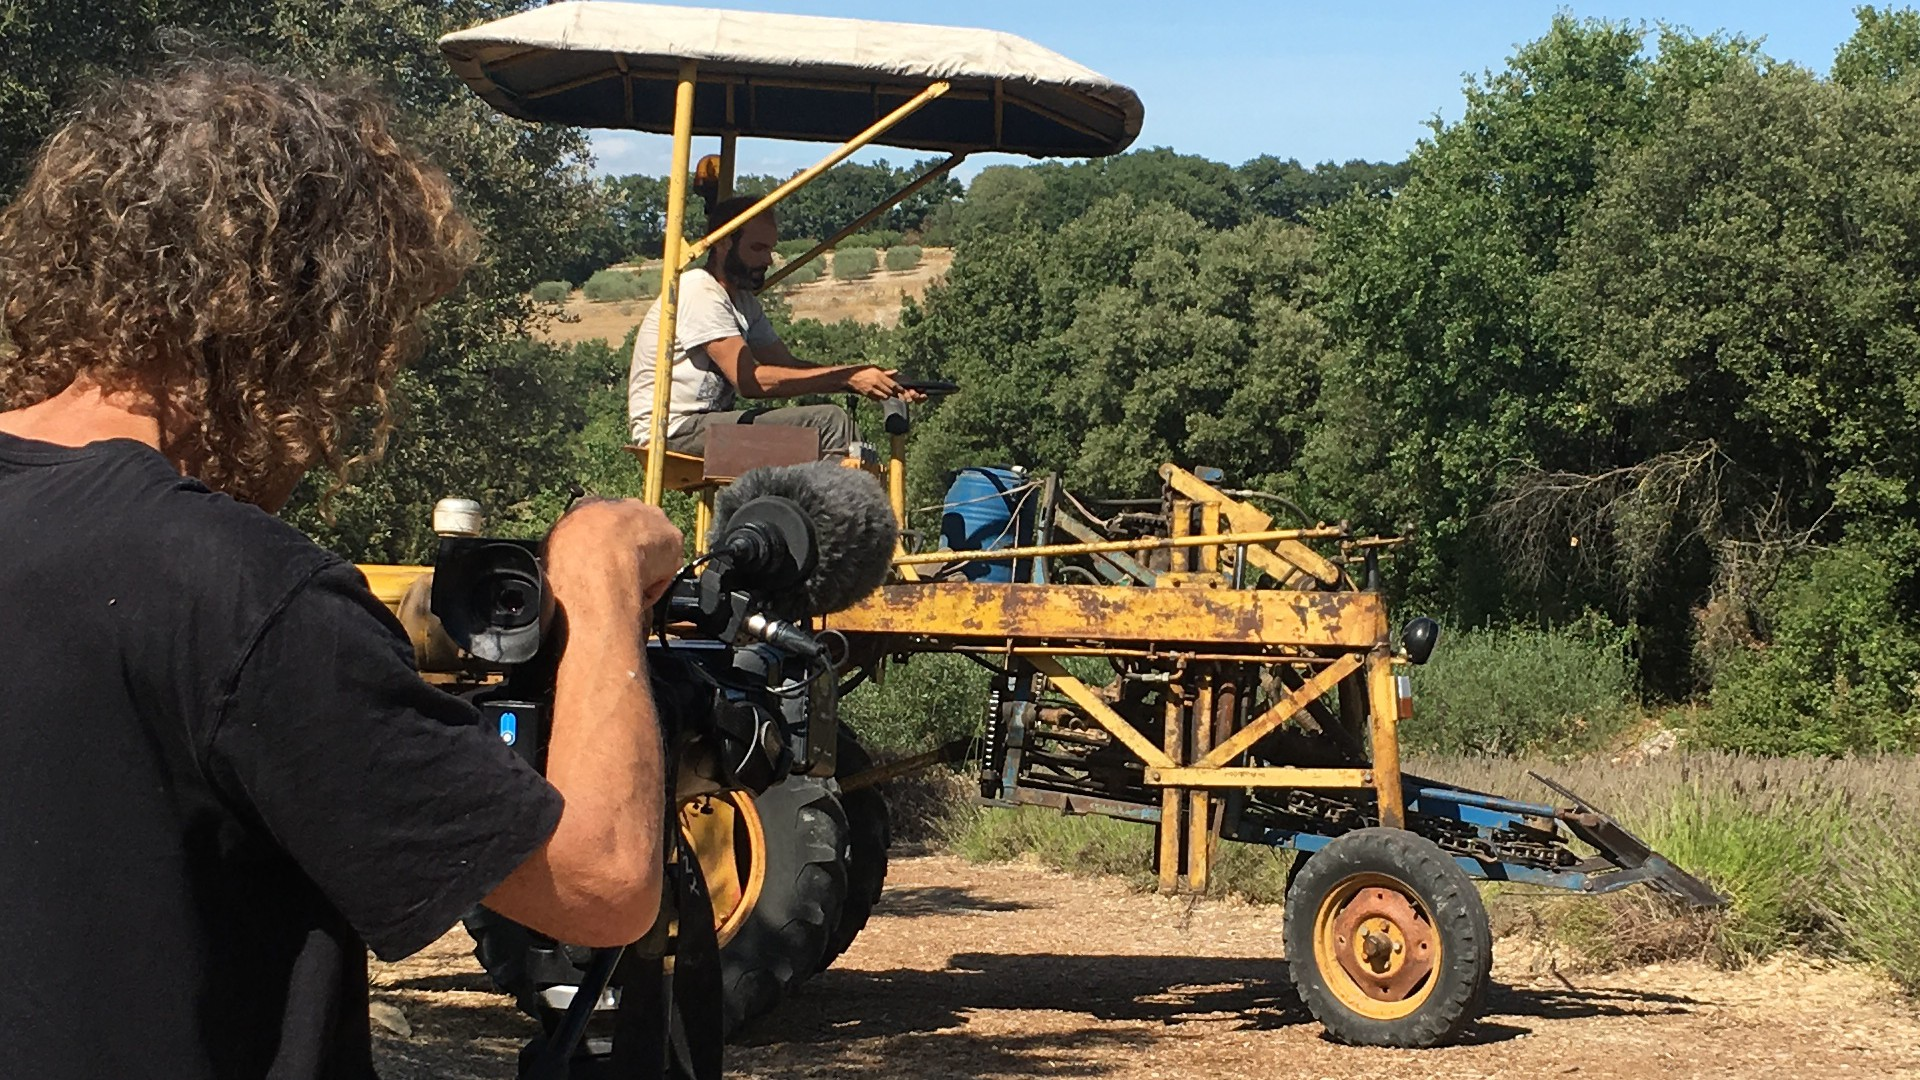 France 3 Pays Gardois en tournage à la distillerie Bel Air